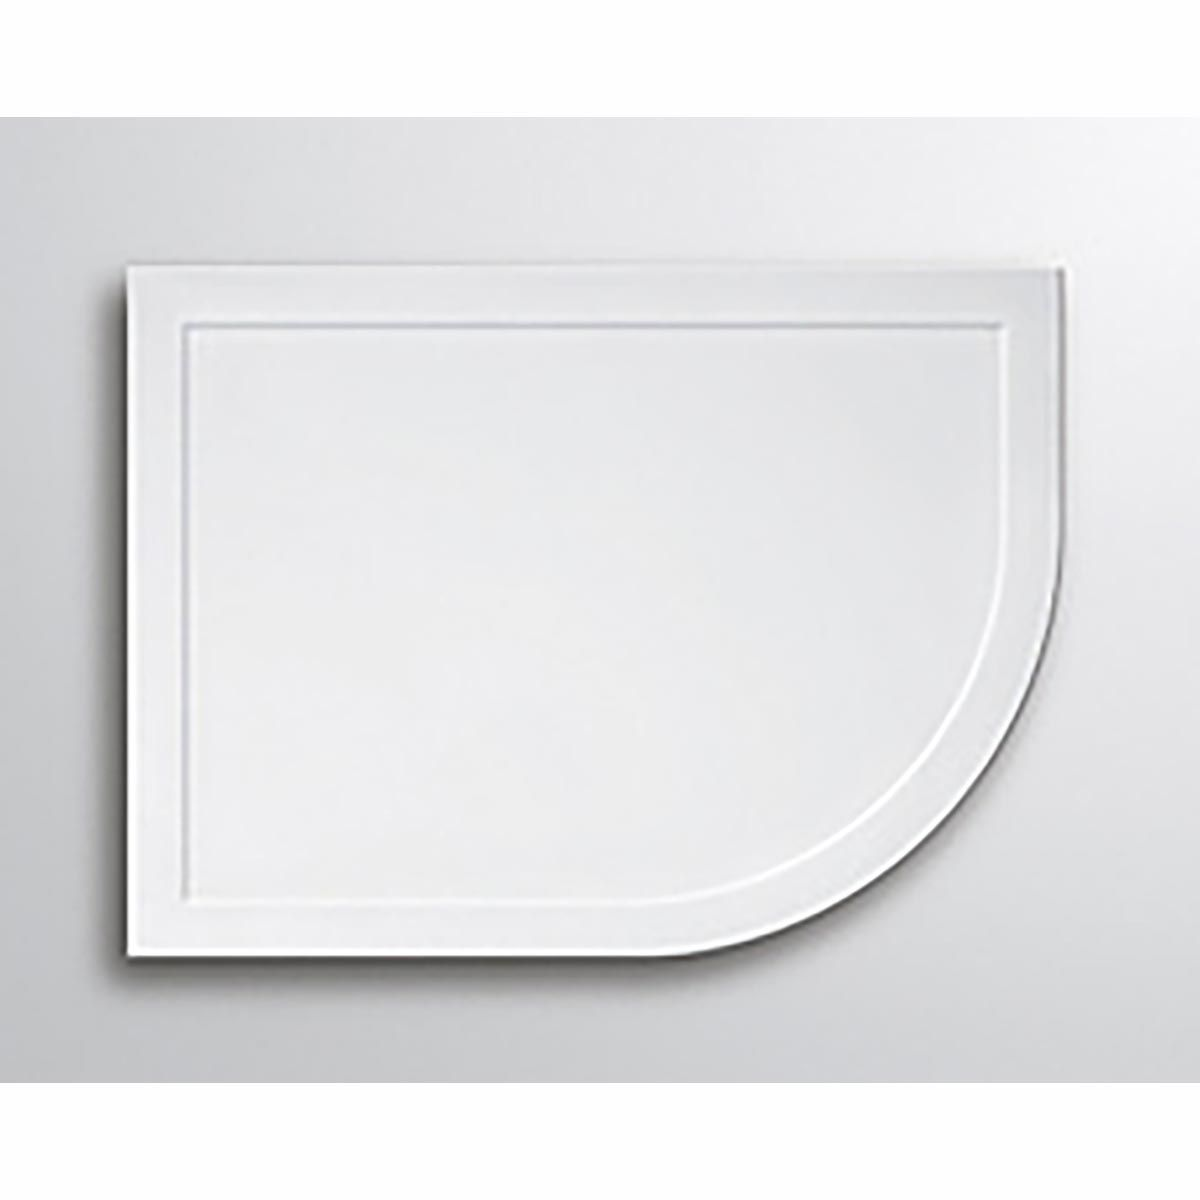 Lakes White Stone Resin/ABS Offset Quadrant Tray Left Hand 1000mm X 800mm